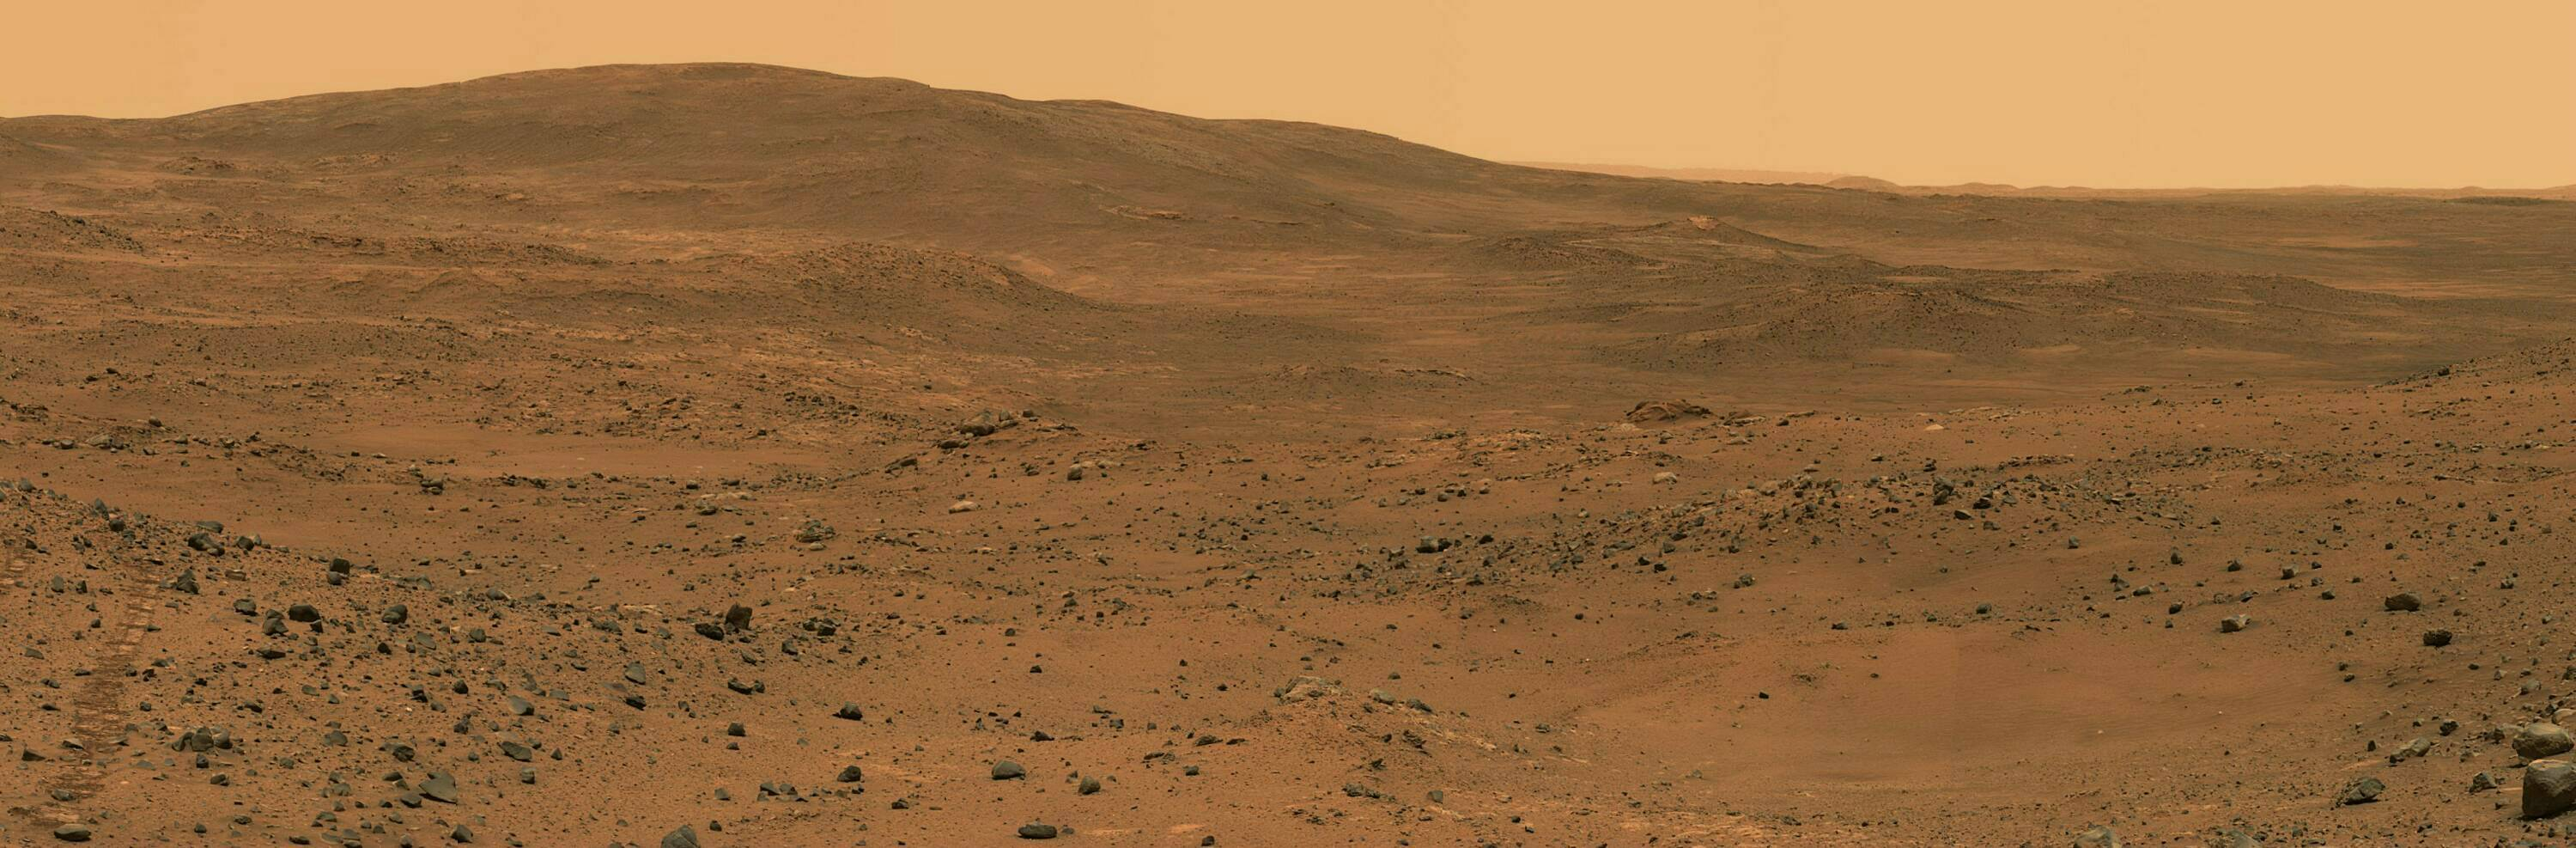 Cars on Mars Roving the Red Planet Alexandra Siy